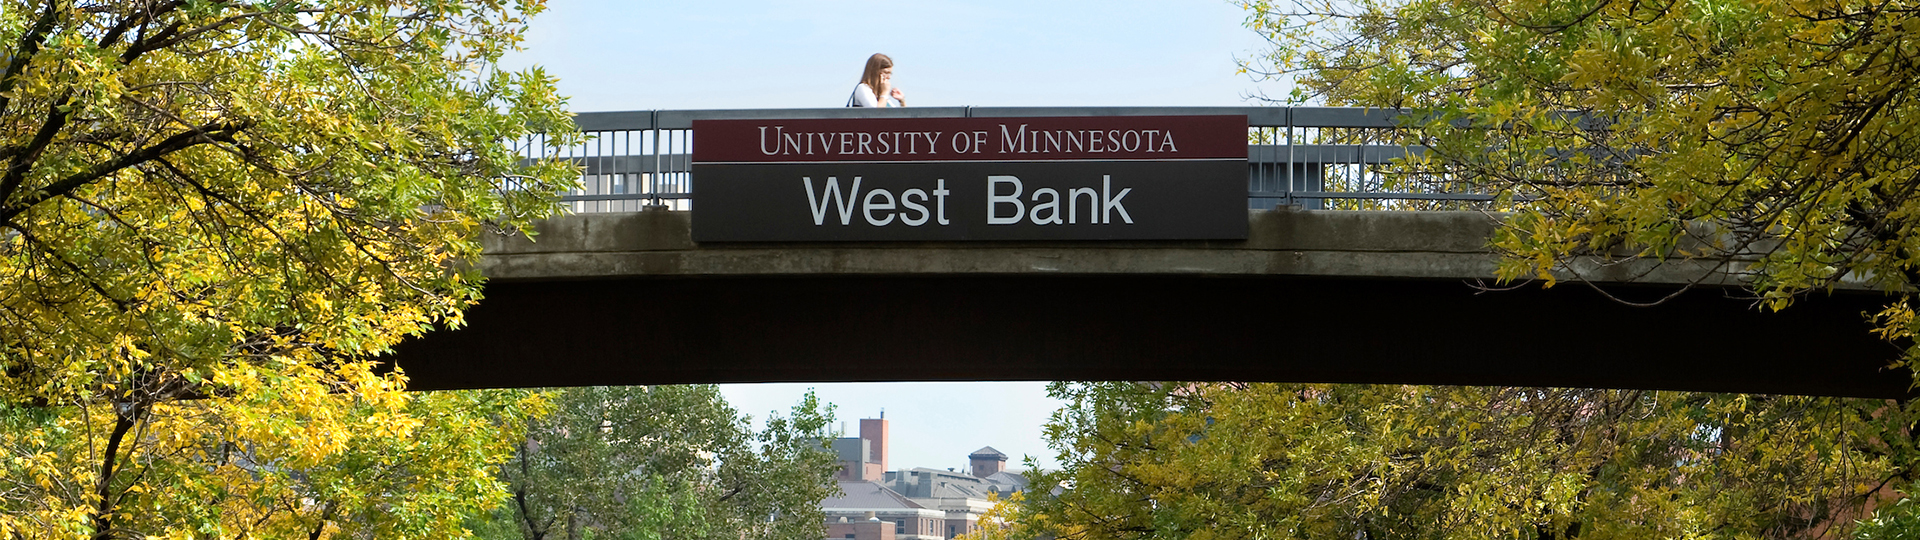 "A student walks across a footpath with a sign that reads ""University of Minnesota West Bank"""